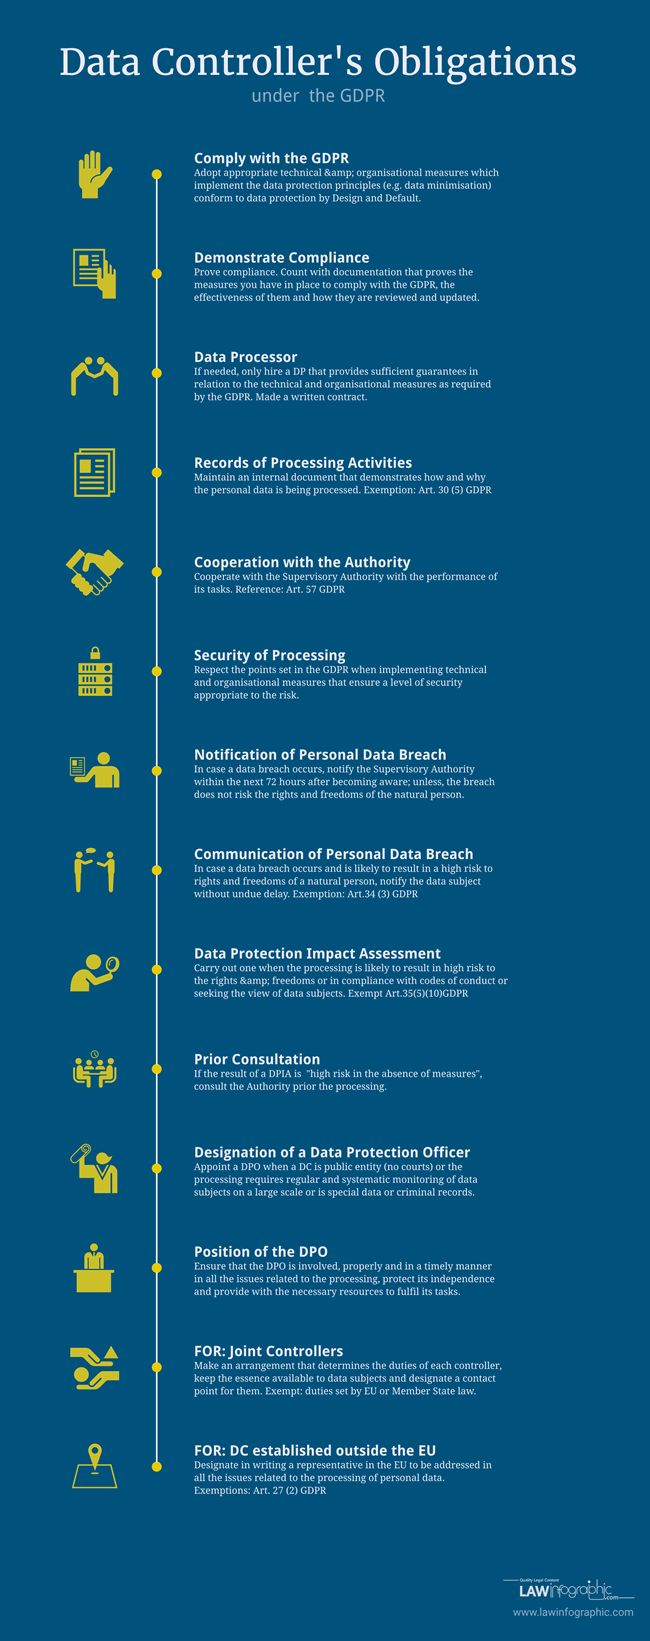 Data controller and data controller responsibilities and obligations under the GDPR - source and full article Law Infographic